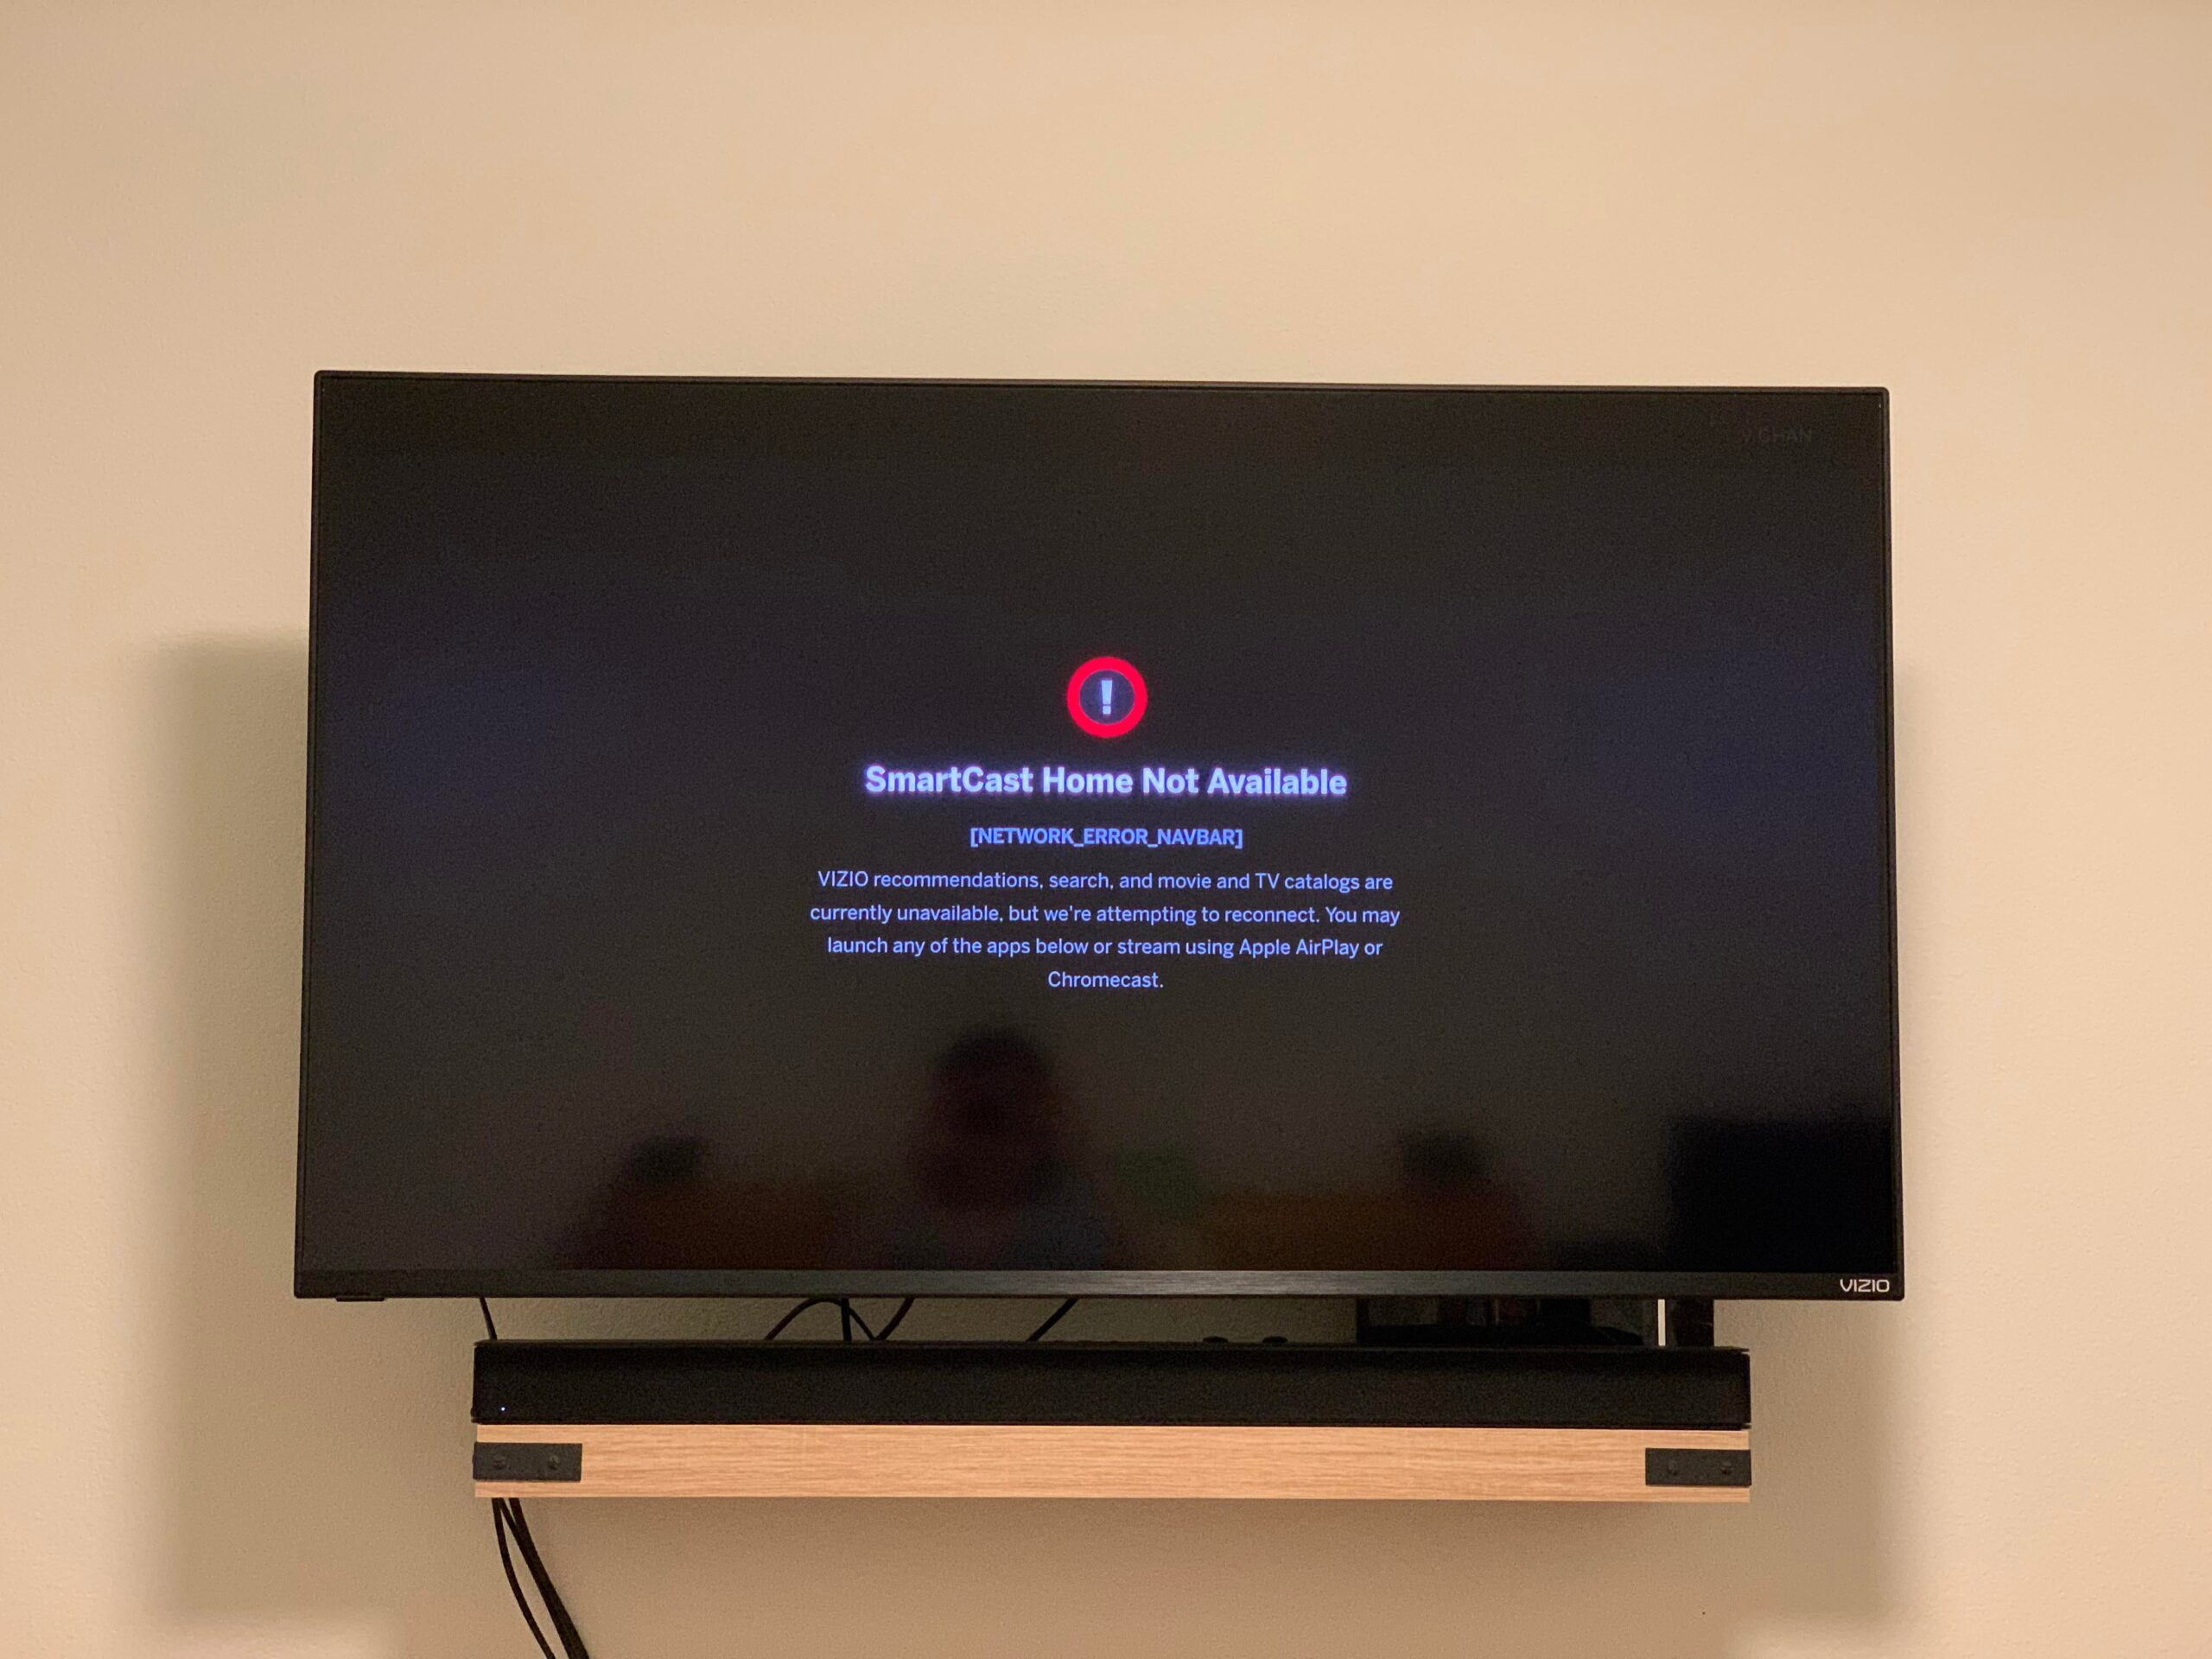 smartcast tv not available